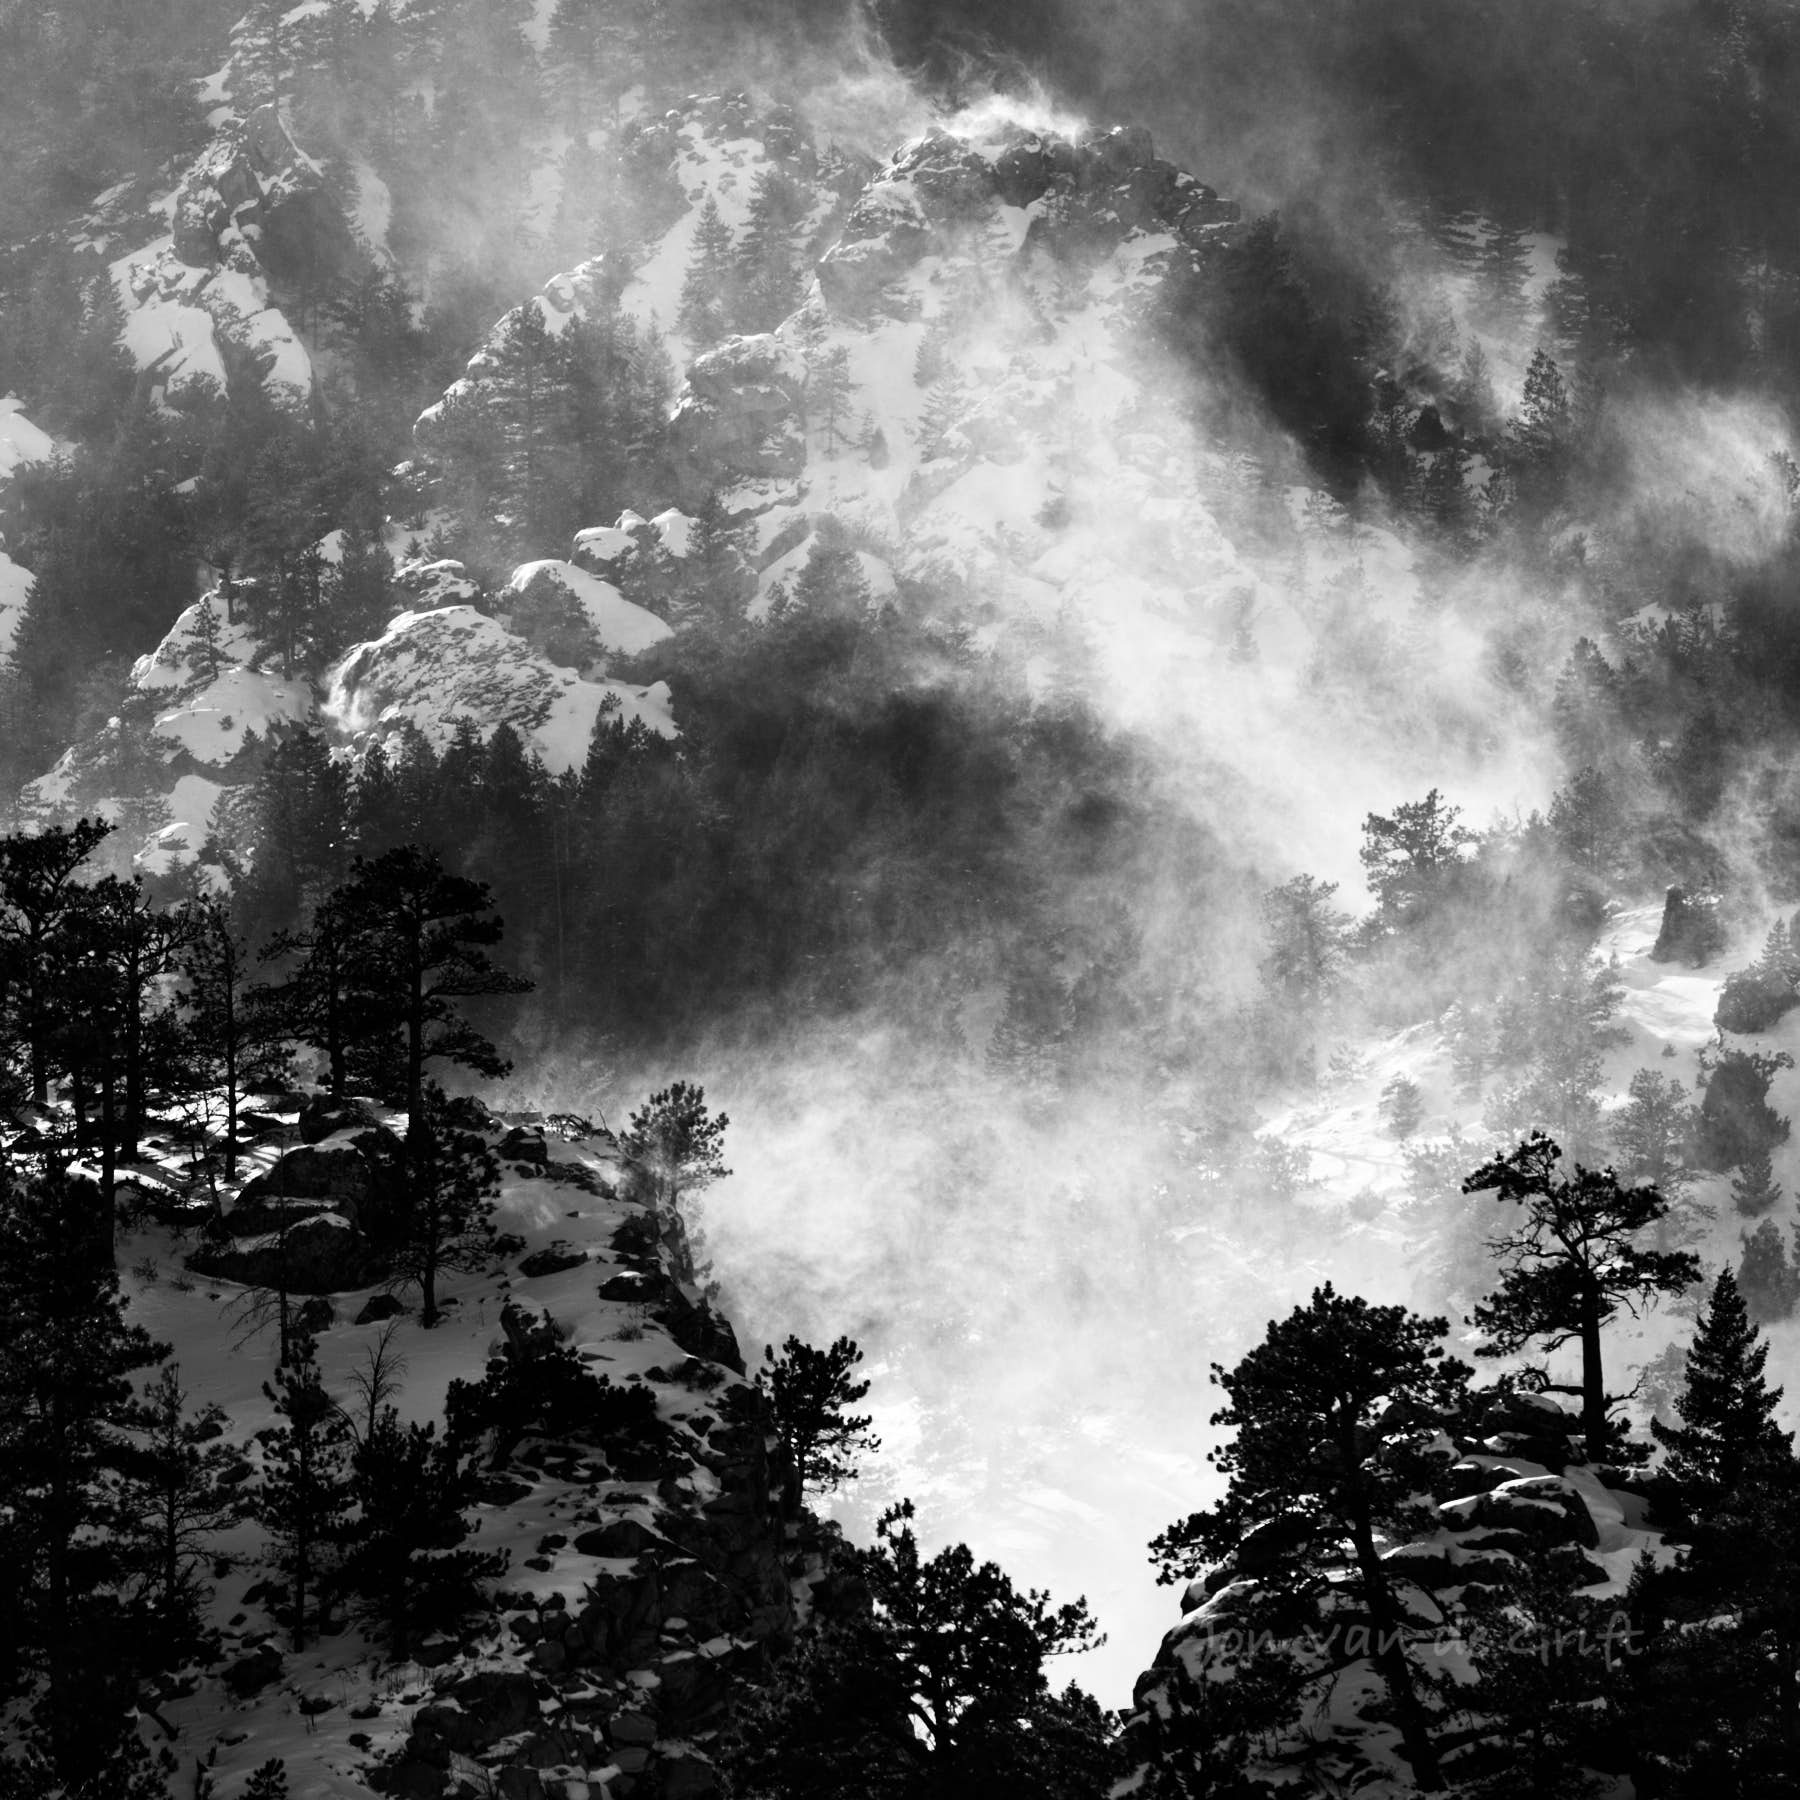 Blowing snow across a steep mountain during winter, captured in black and white.